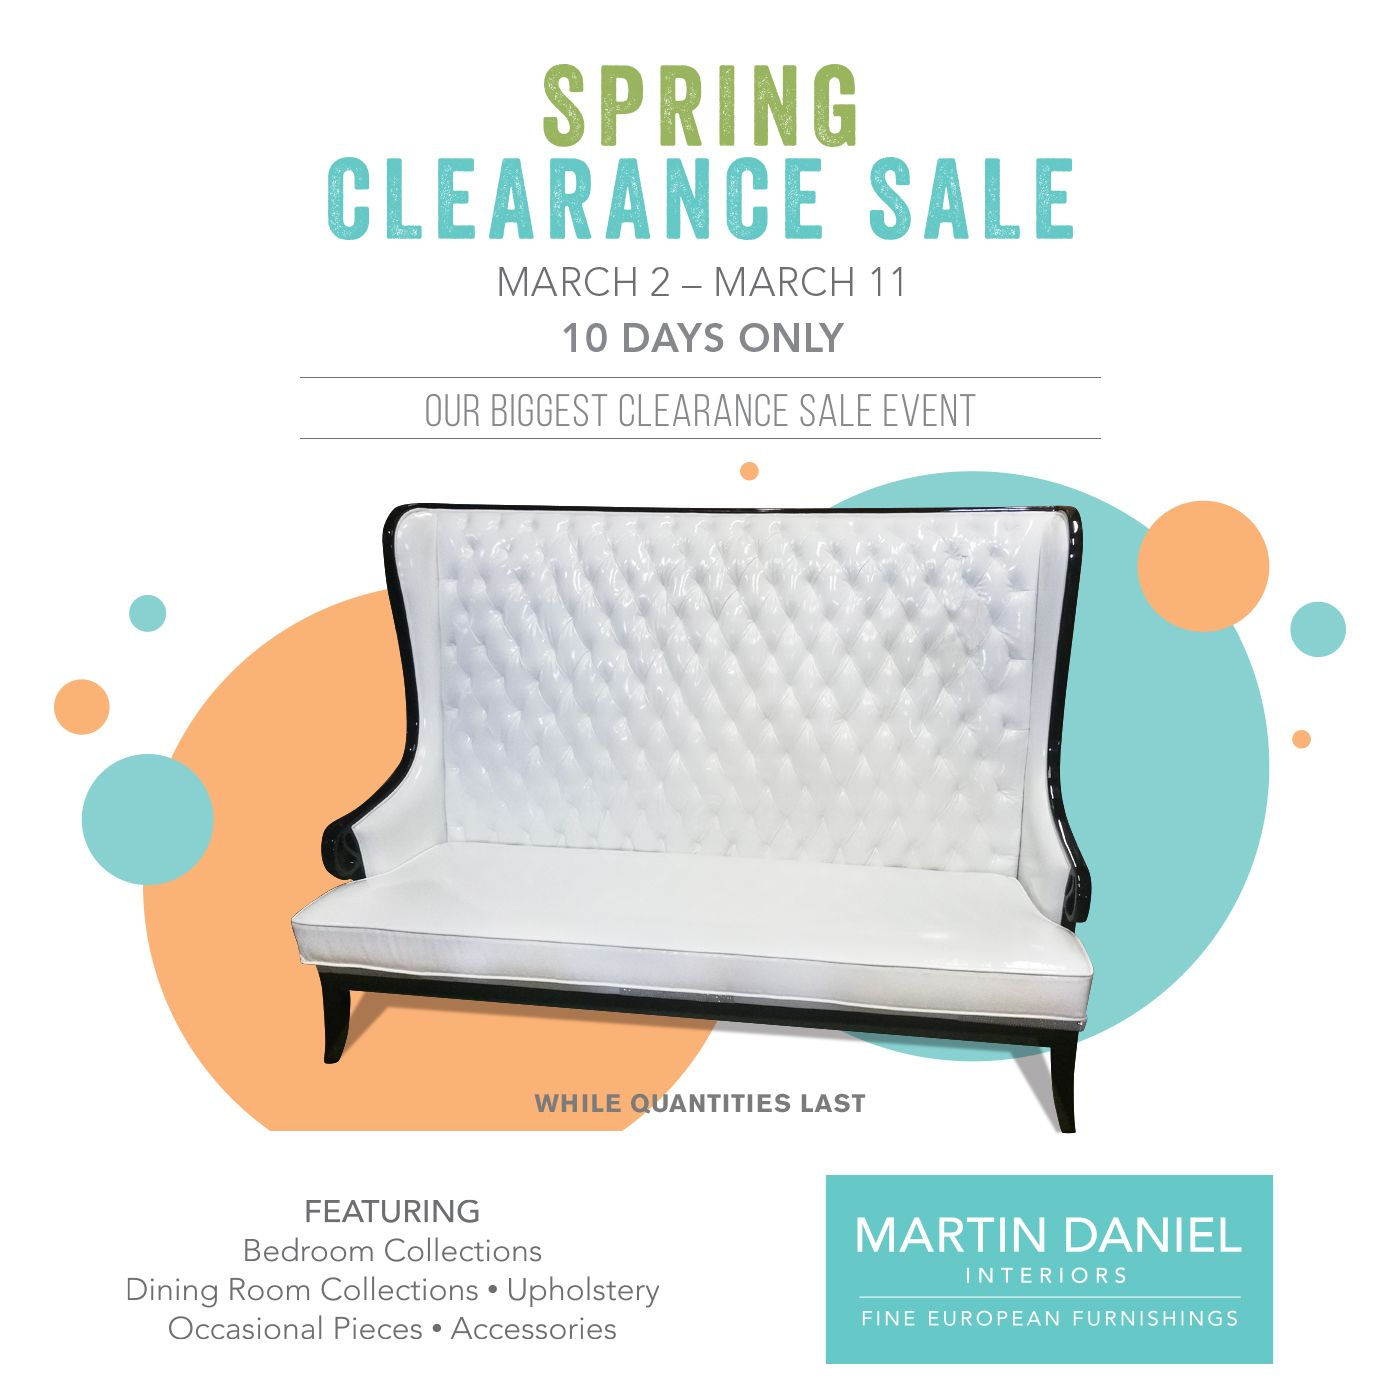 Our spring clearance sale is happening now head on over to martin daniel interiors and receive exclusive deals on many of our showroom collections